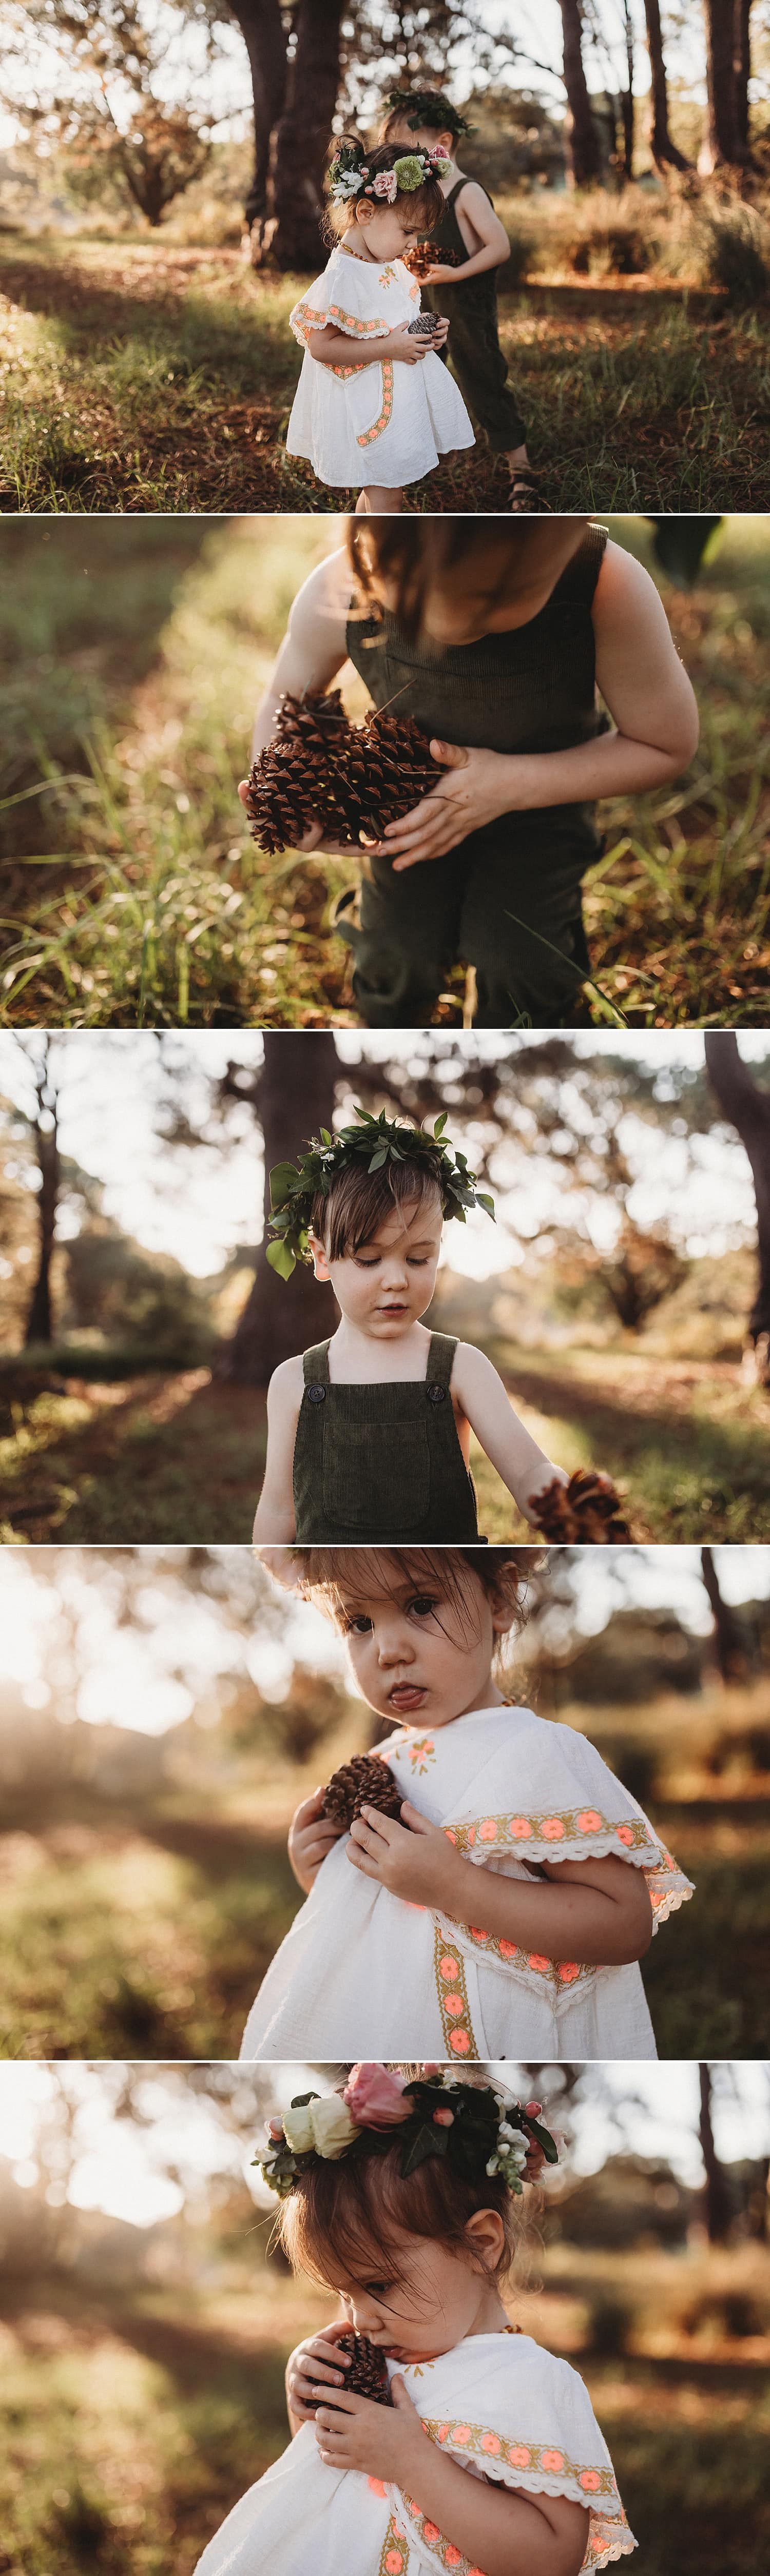 Natural-Lifestyle-Family-Photography-Sydney-Sutherland-Shire